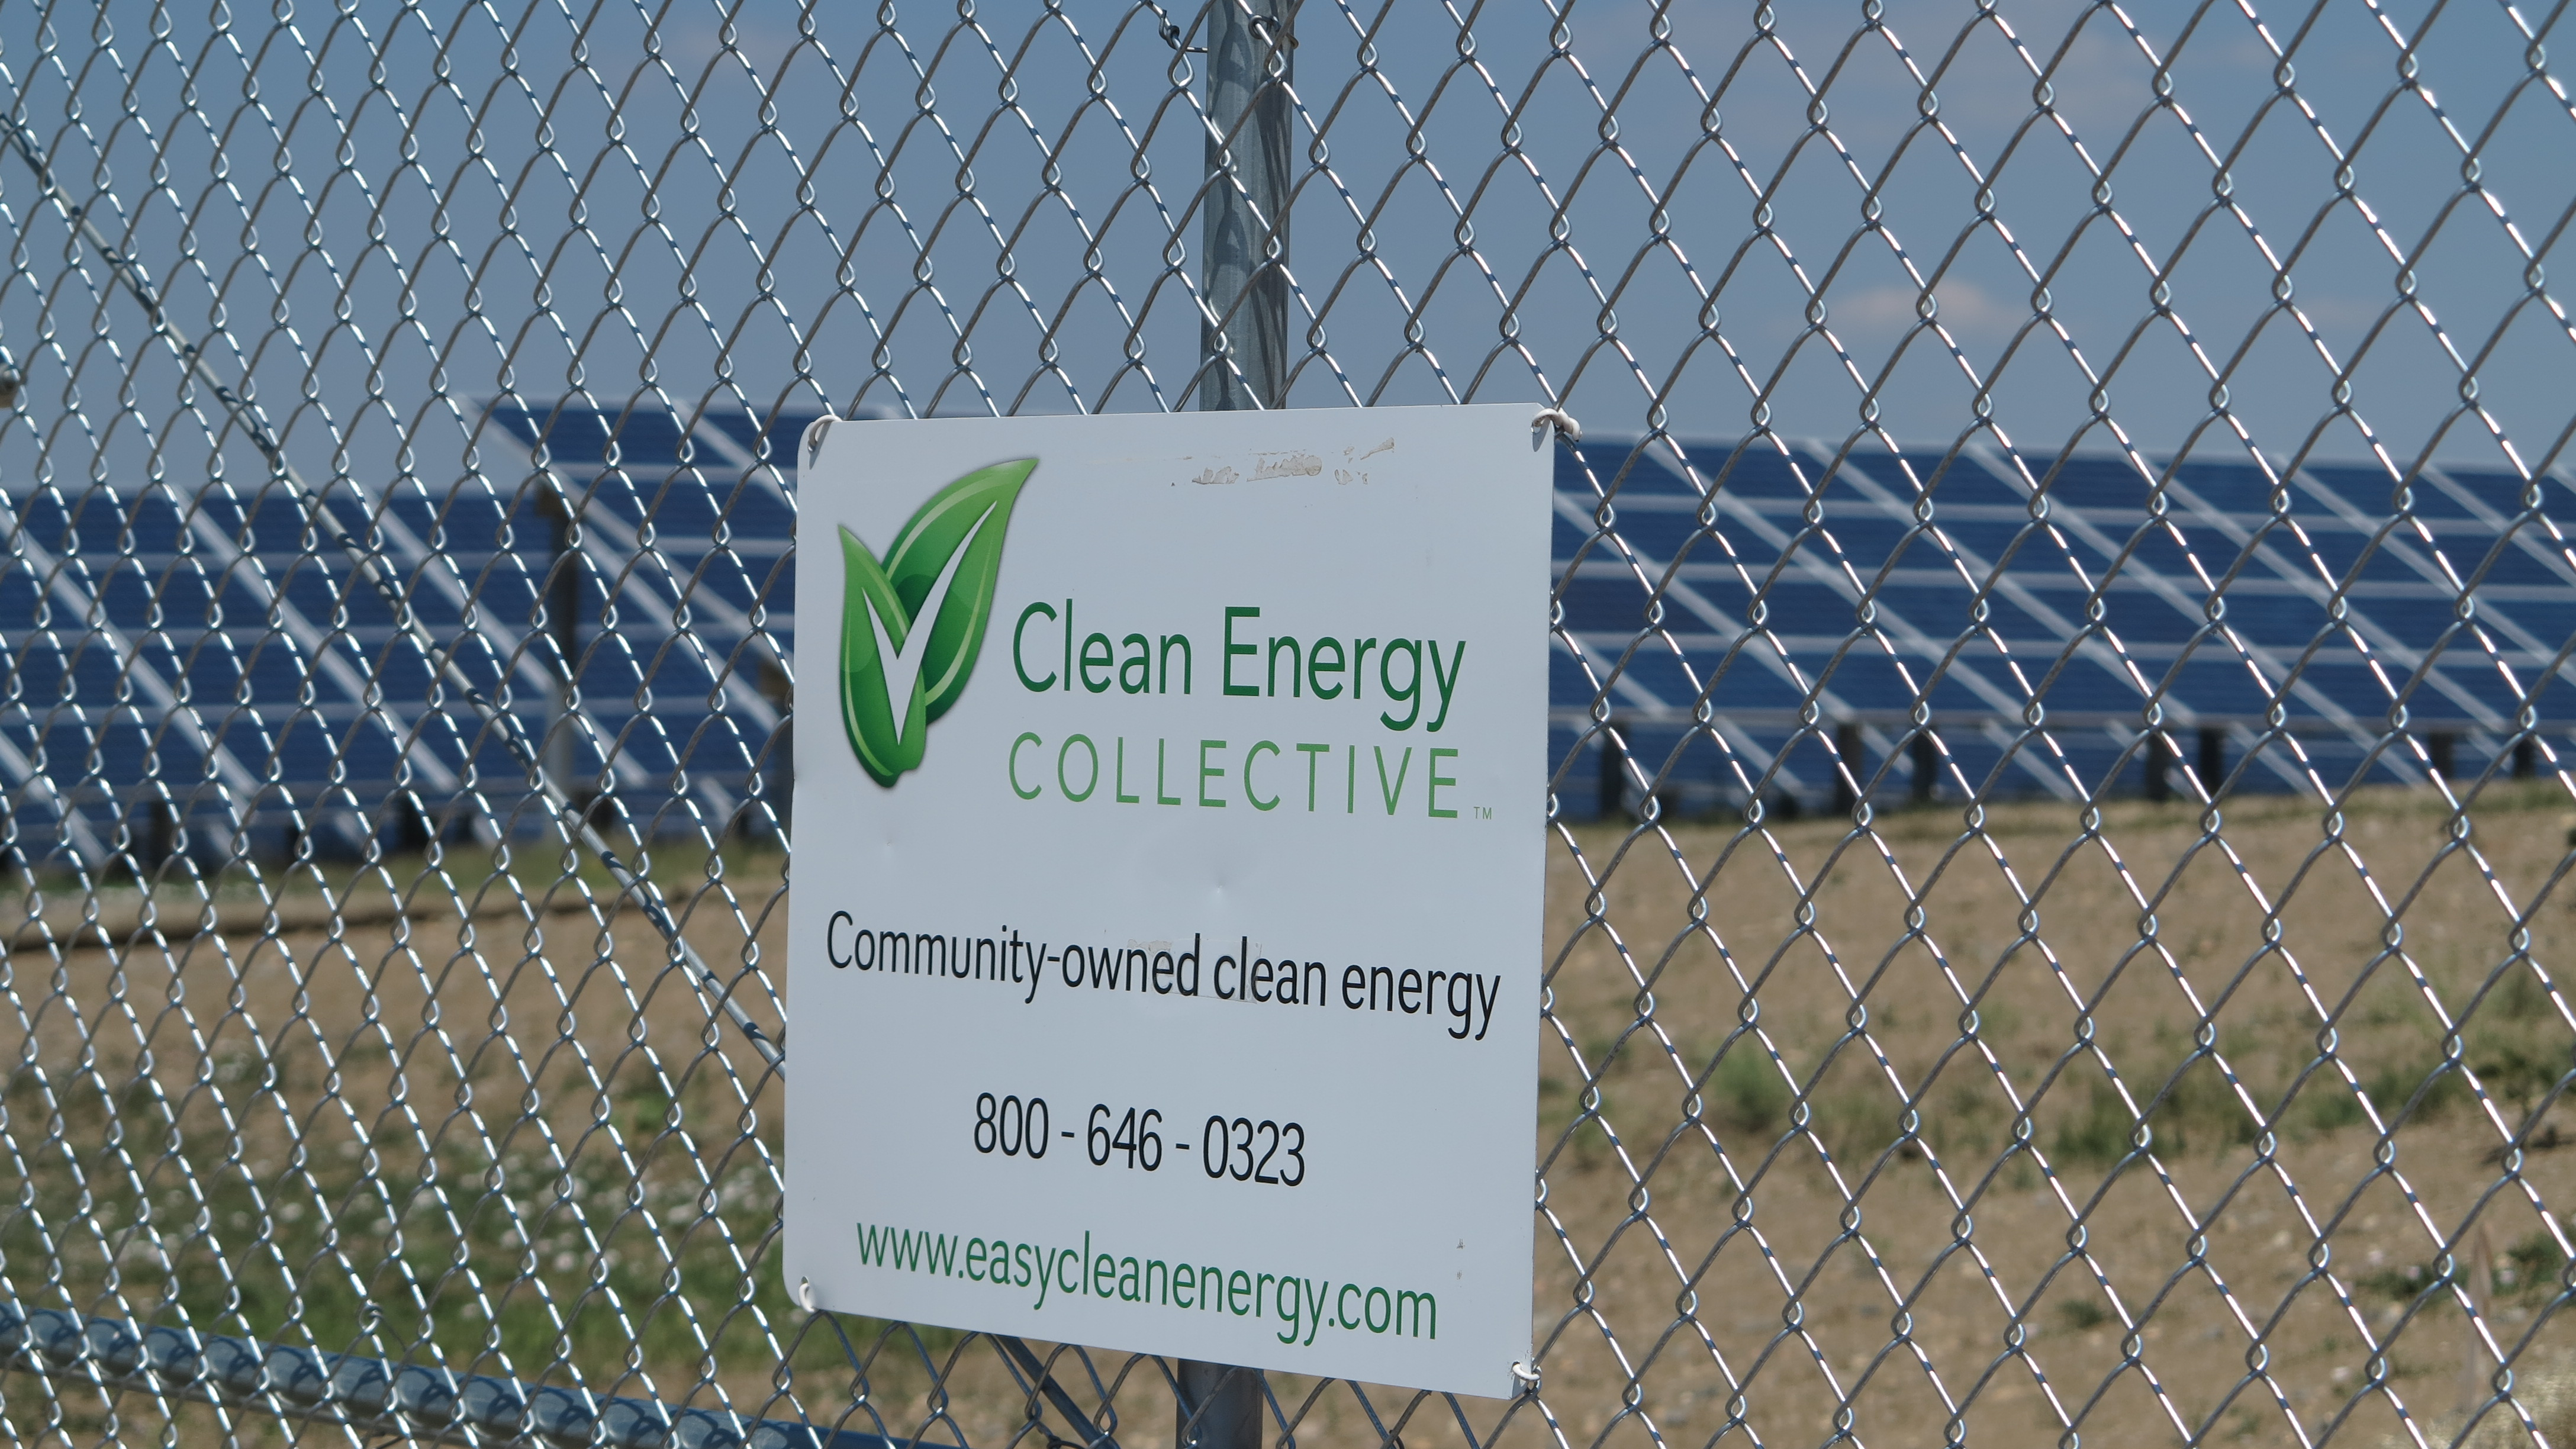 CLean Energy Collective contact info2